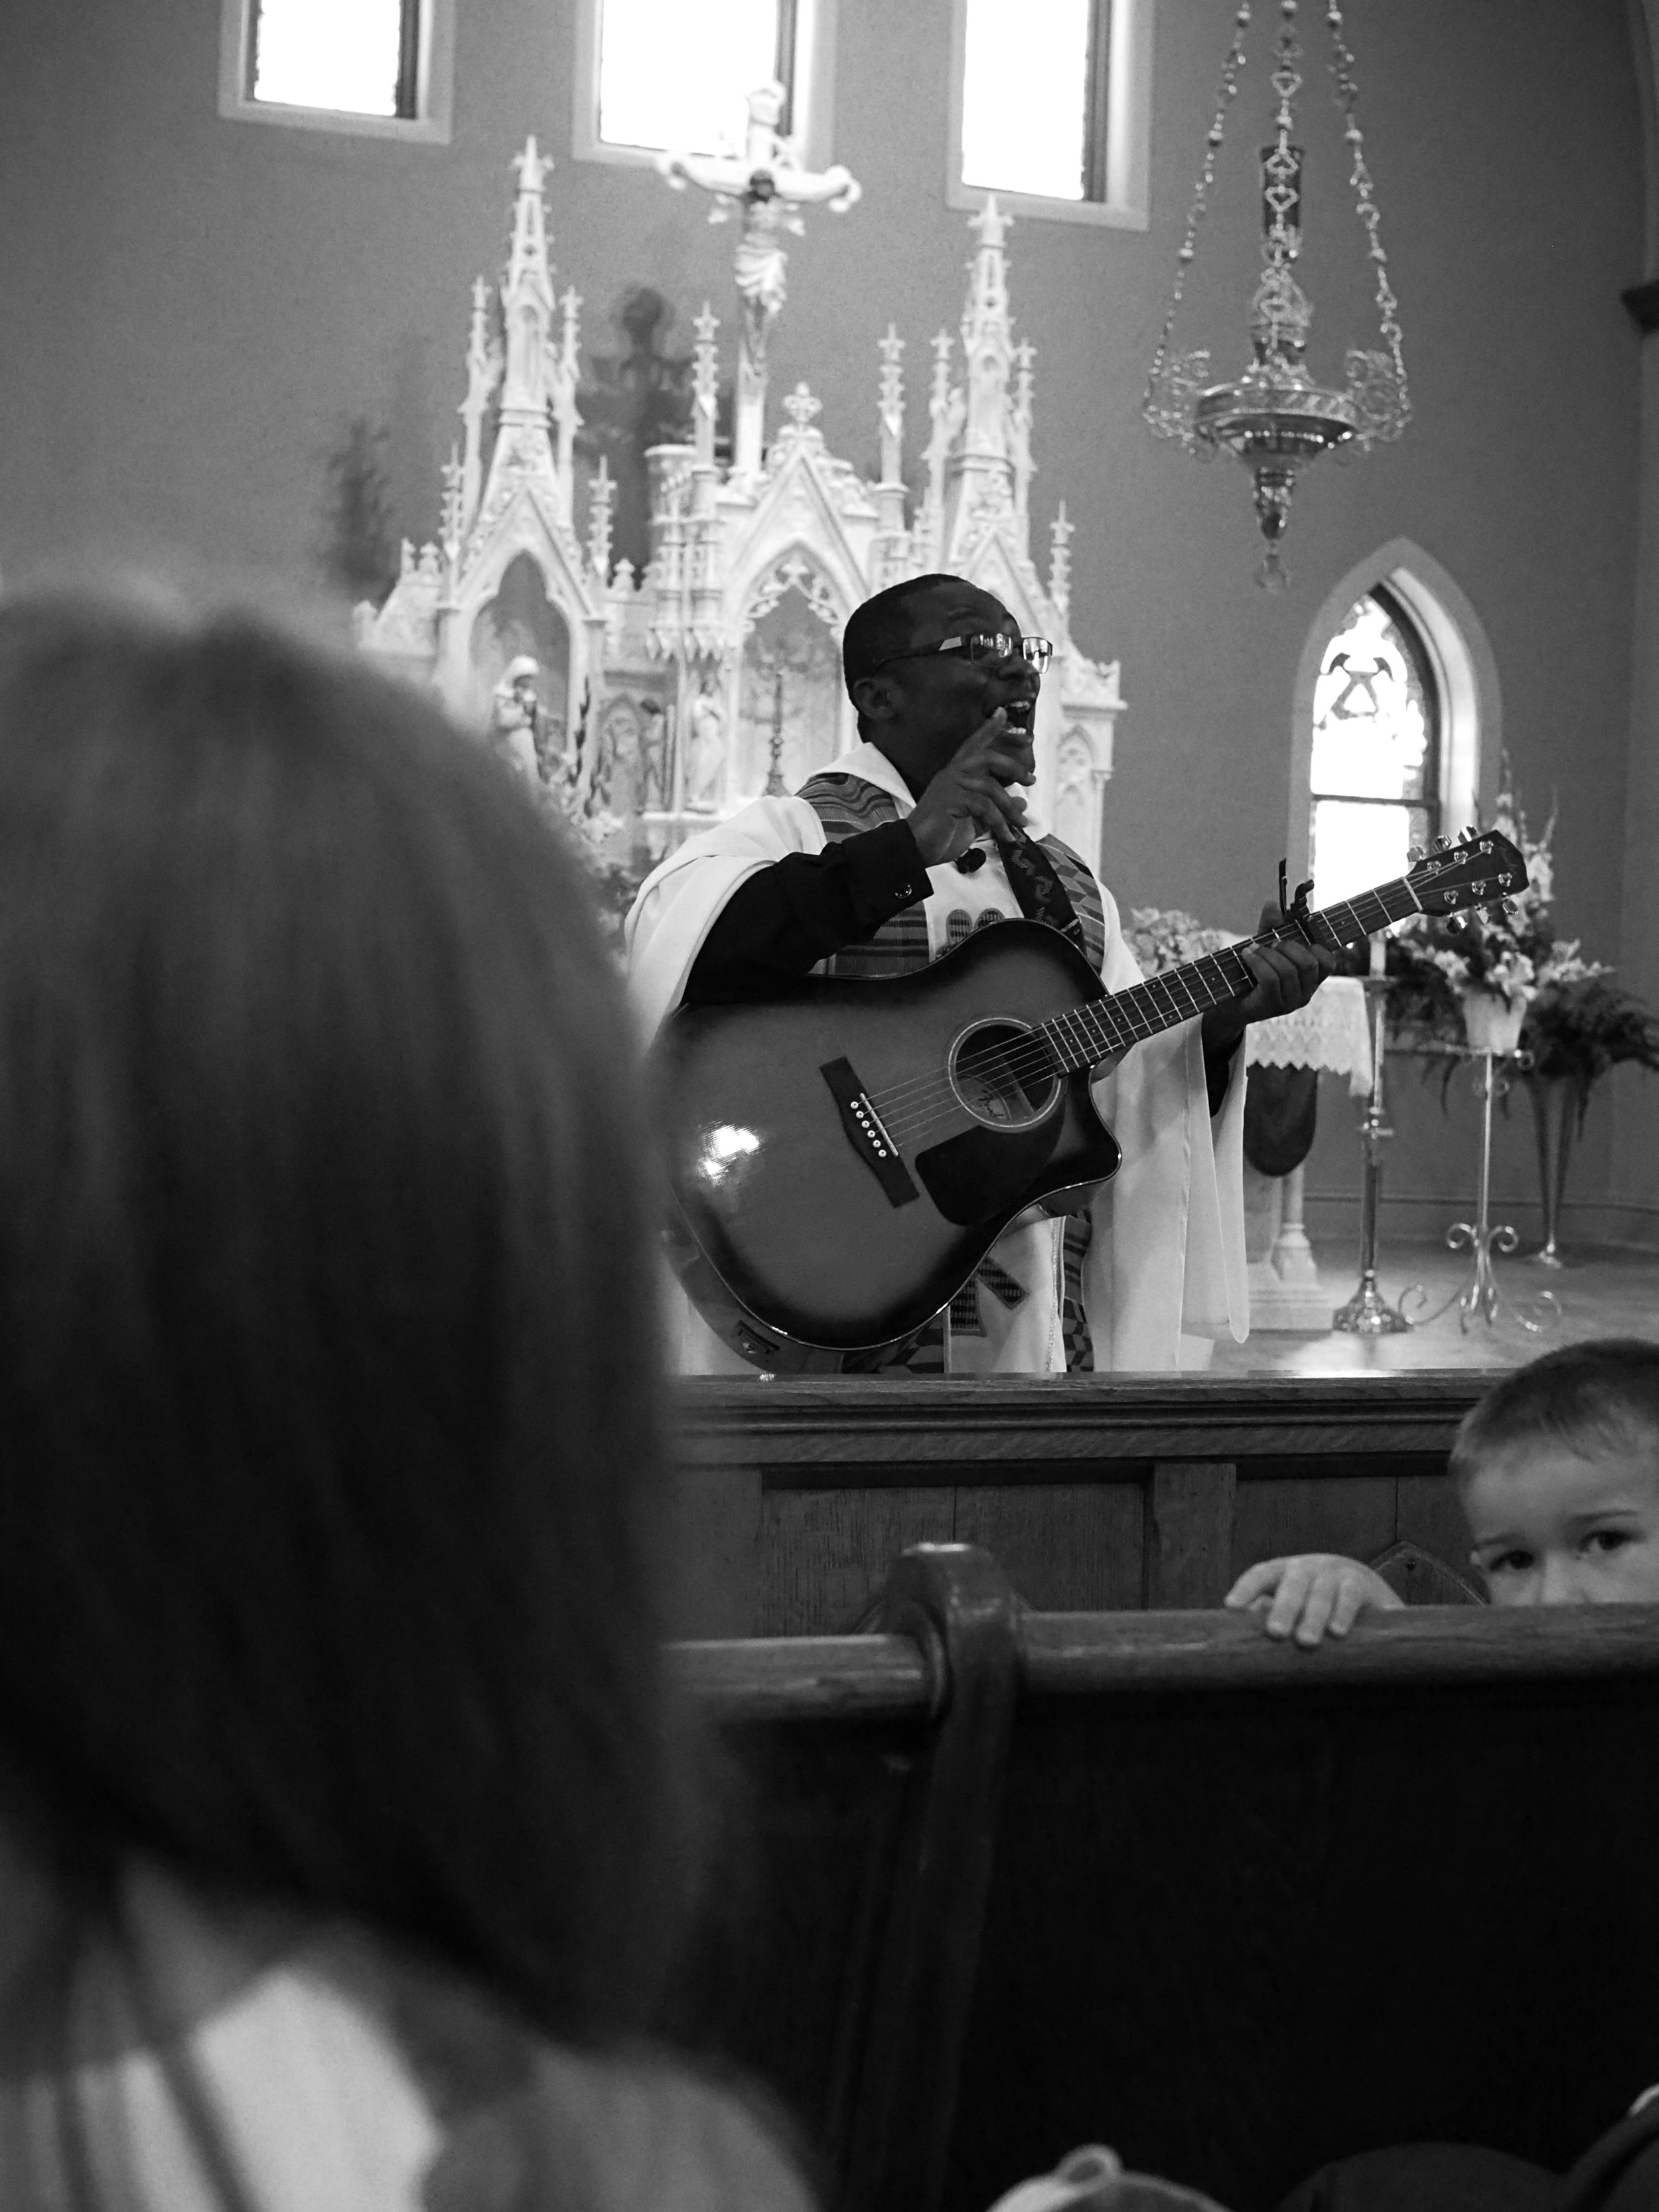 Singing Priest. Creston, Iowa